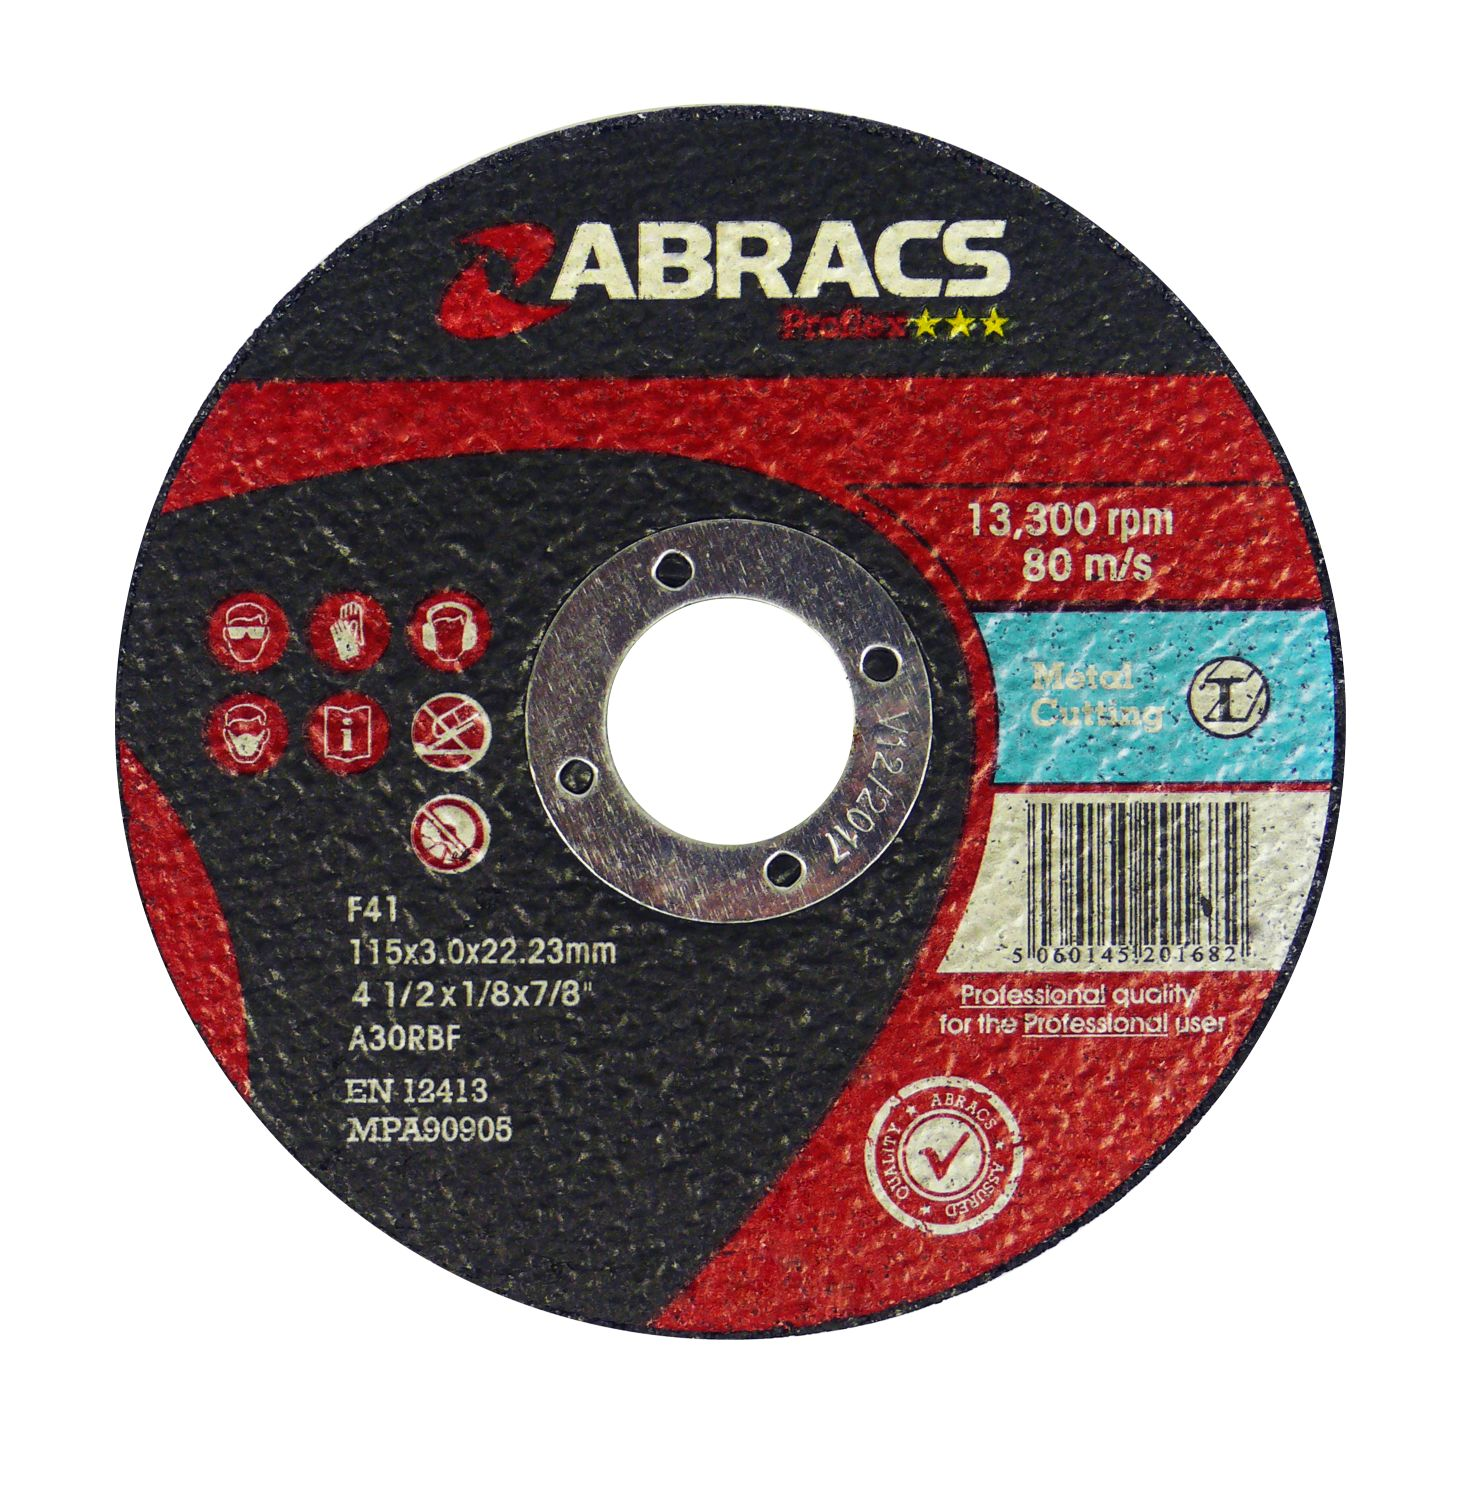 METAL CUTTING DISC - FLAT 300 X 3.5 X 20MM